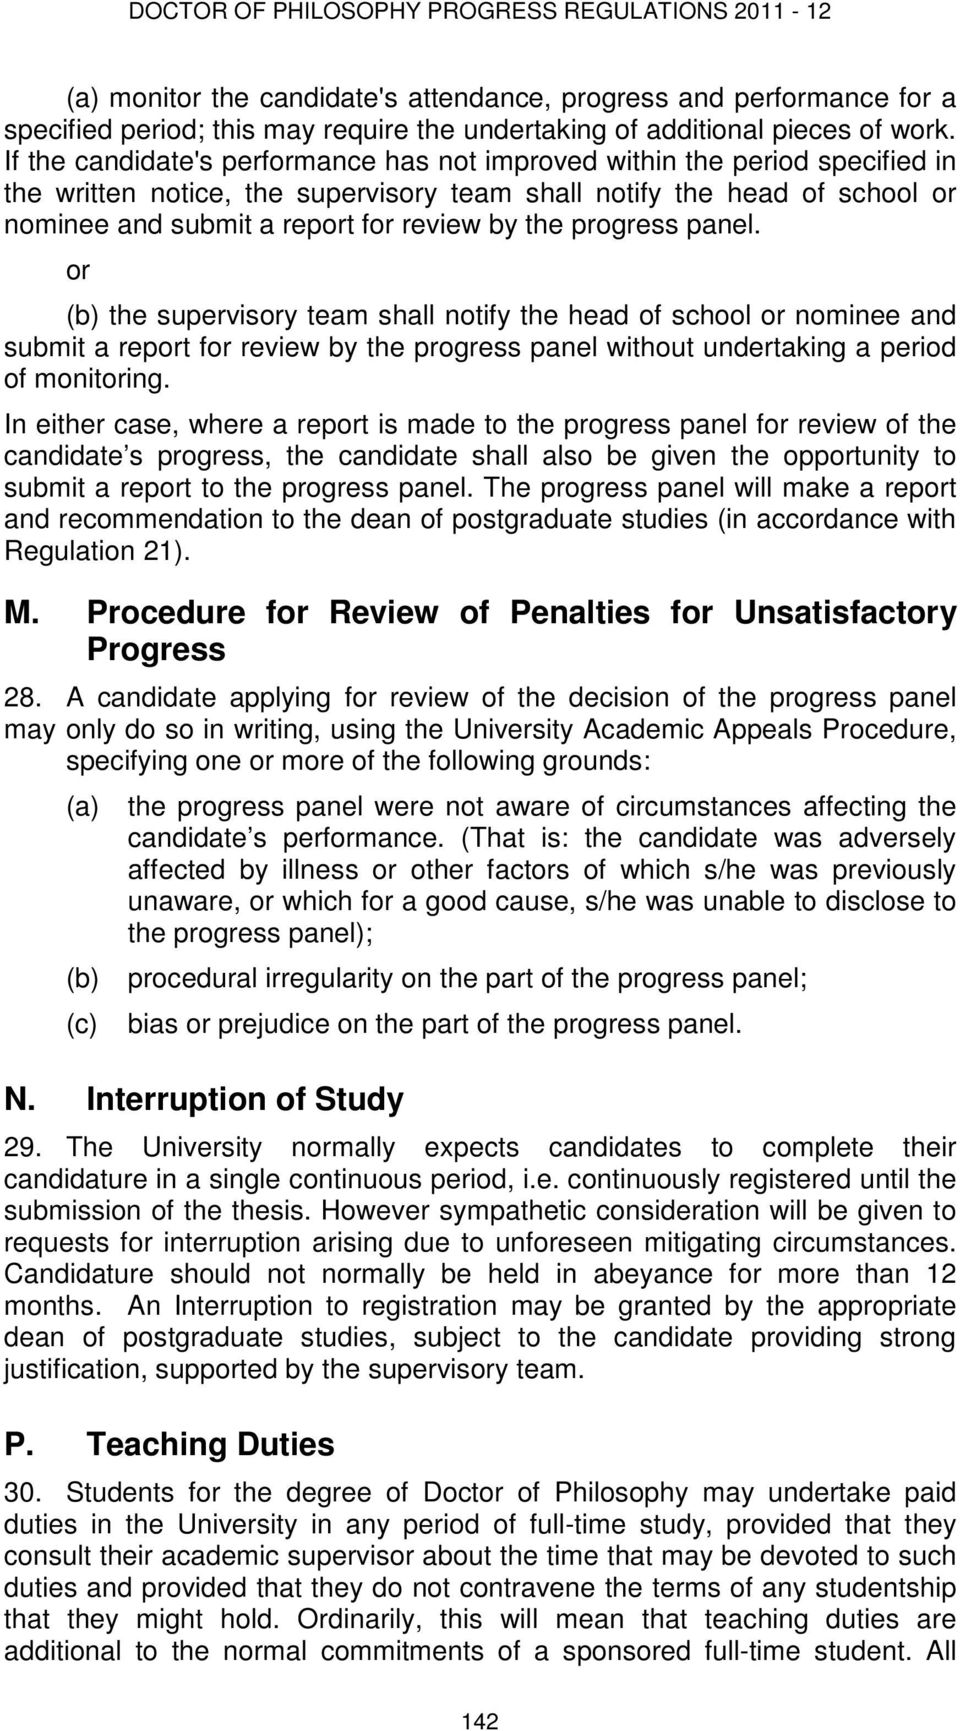 the progress panel. or the supervisory team shall notify the head of school or nominee and submit a report for review by the progress panel without undertaking a period of monitoring.